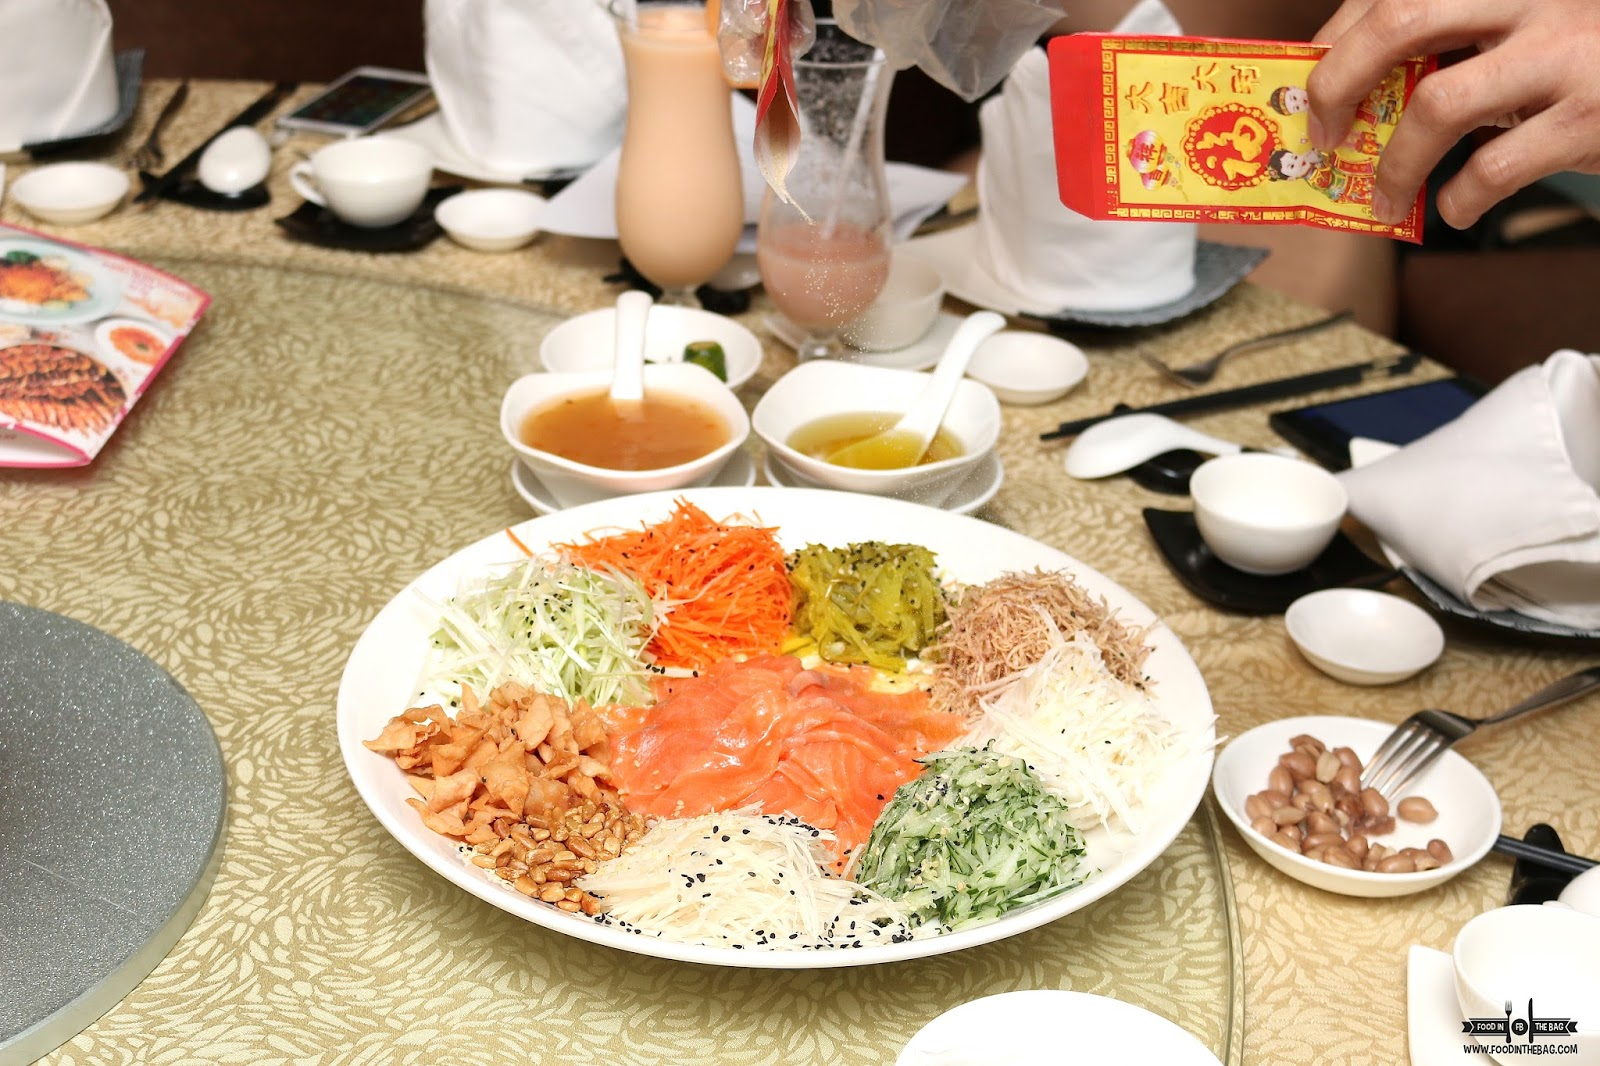 Crystal jade bgc chinese new year menu for 2016 food in the bag it is prepared by the staff and he explains the different symbolism of each ingredient buycottarizona Images